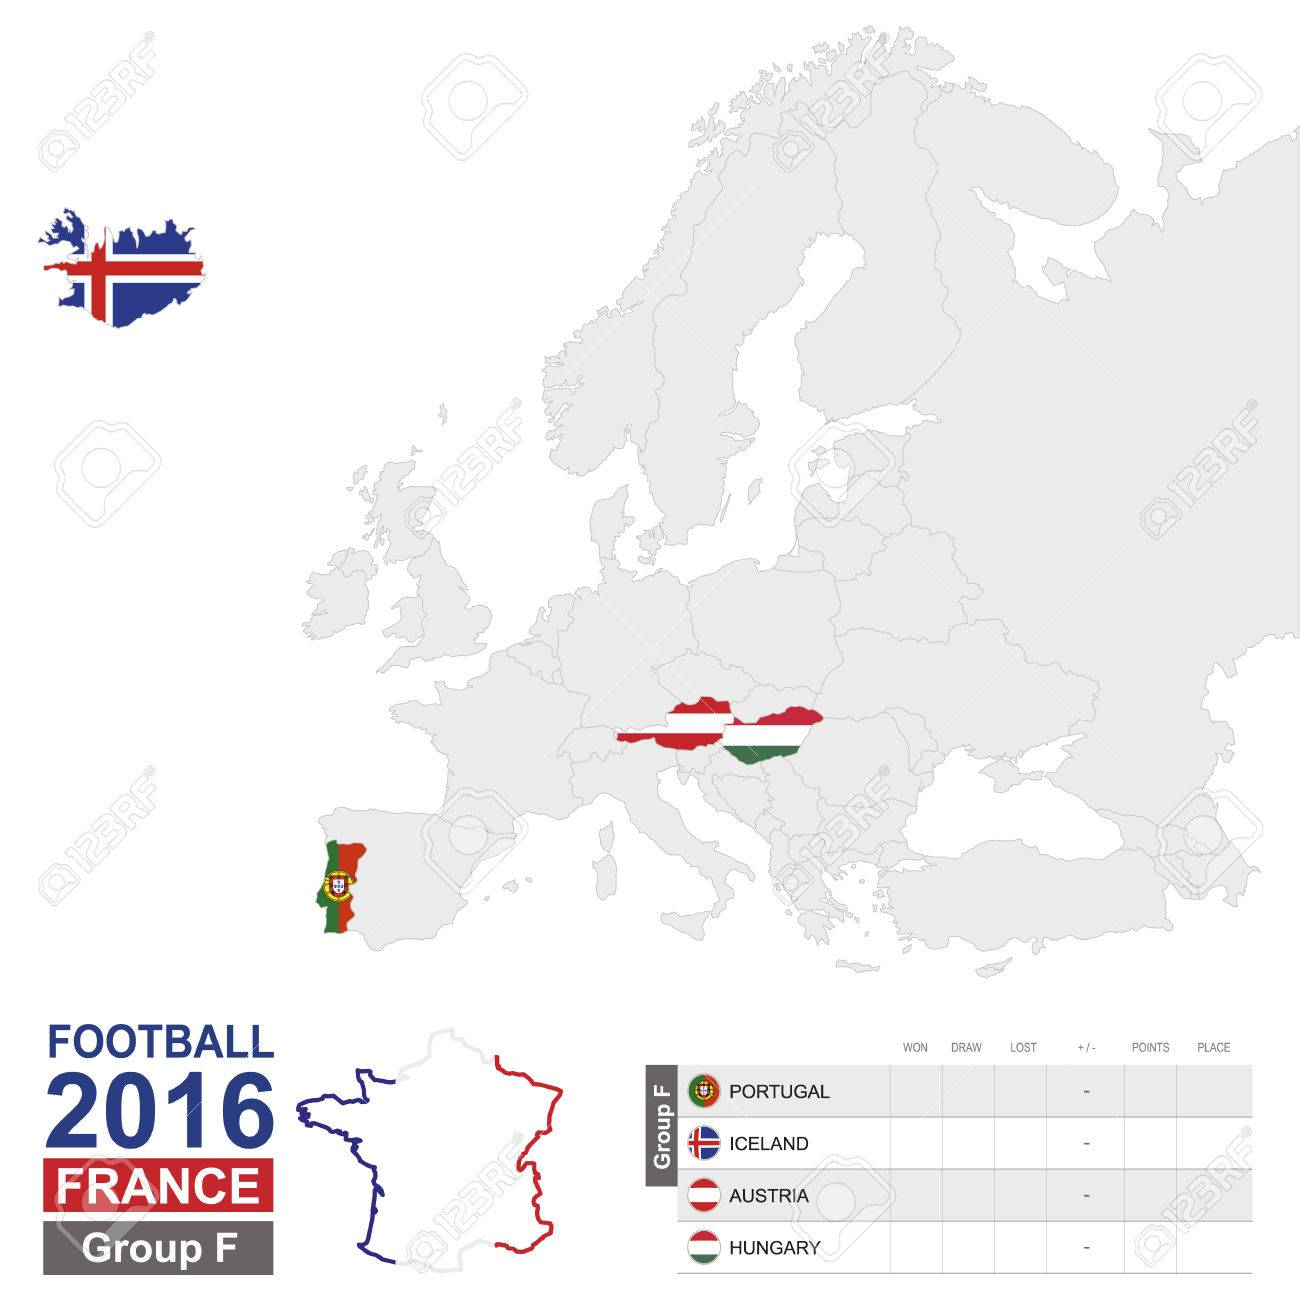 Football 2016 group f table group f highlighted on europe map group f highlighted on europe map portugal gumiabroncs Images